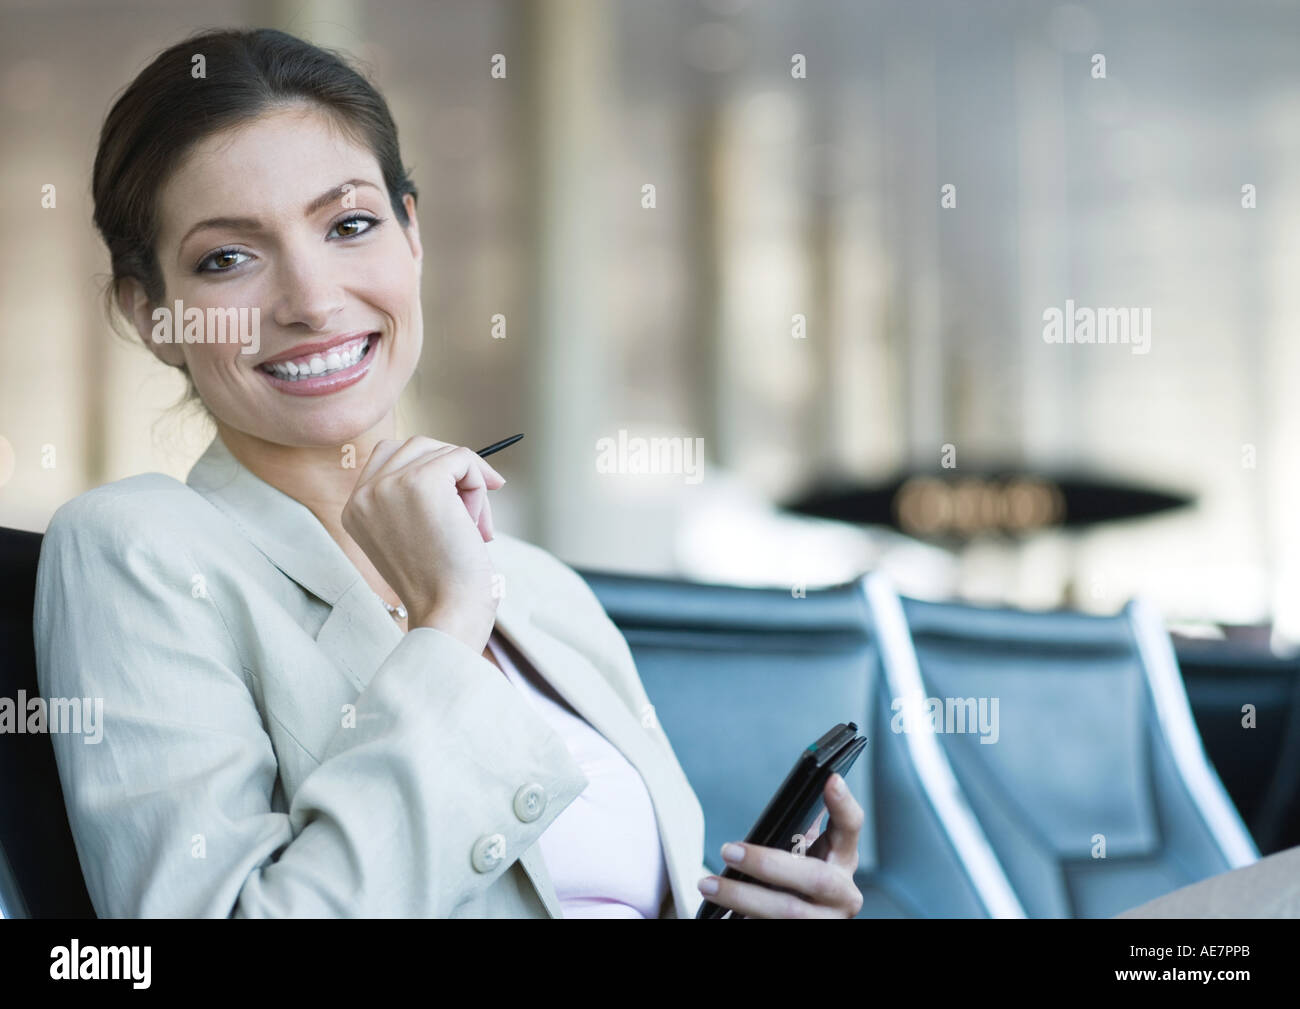 Businesswoman using electronic organizer in airport lounge area, smiling at camera - Stock Image